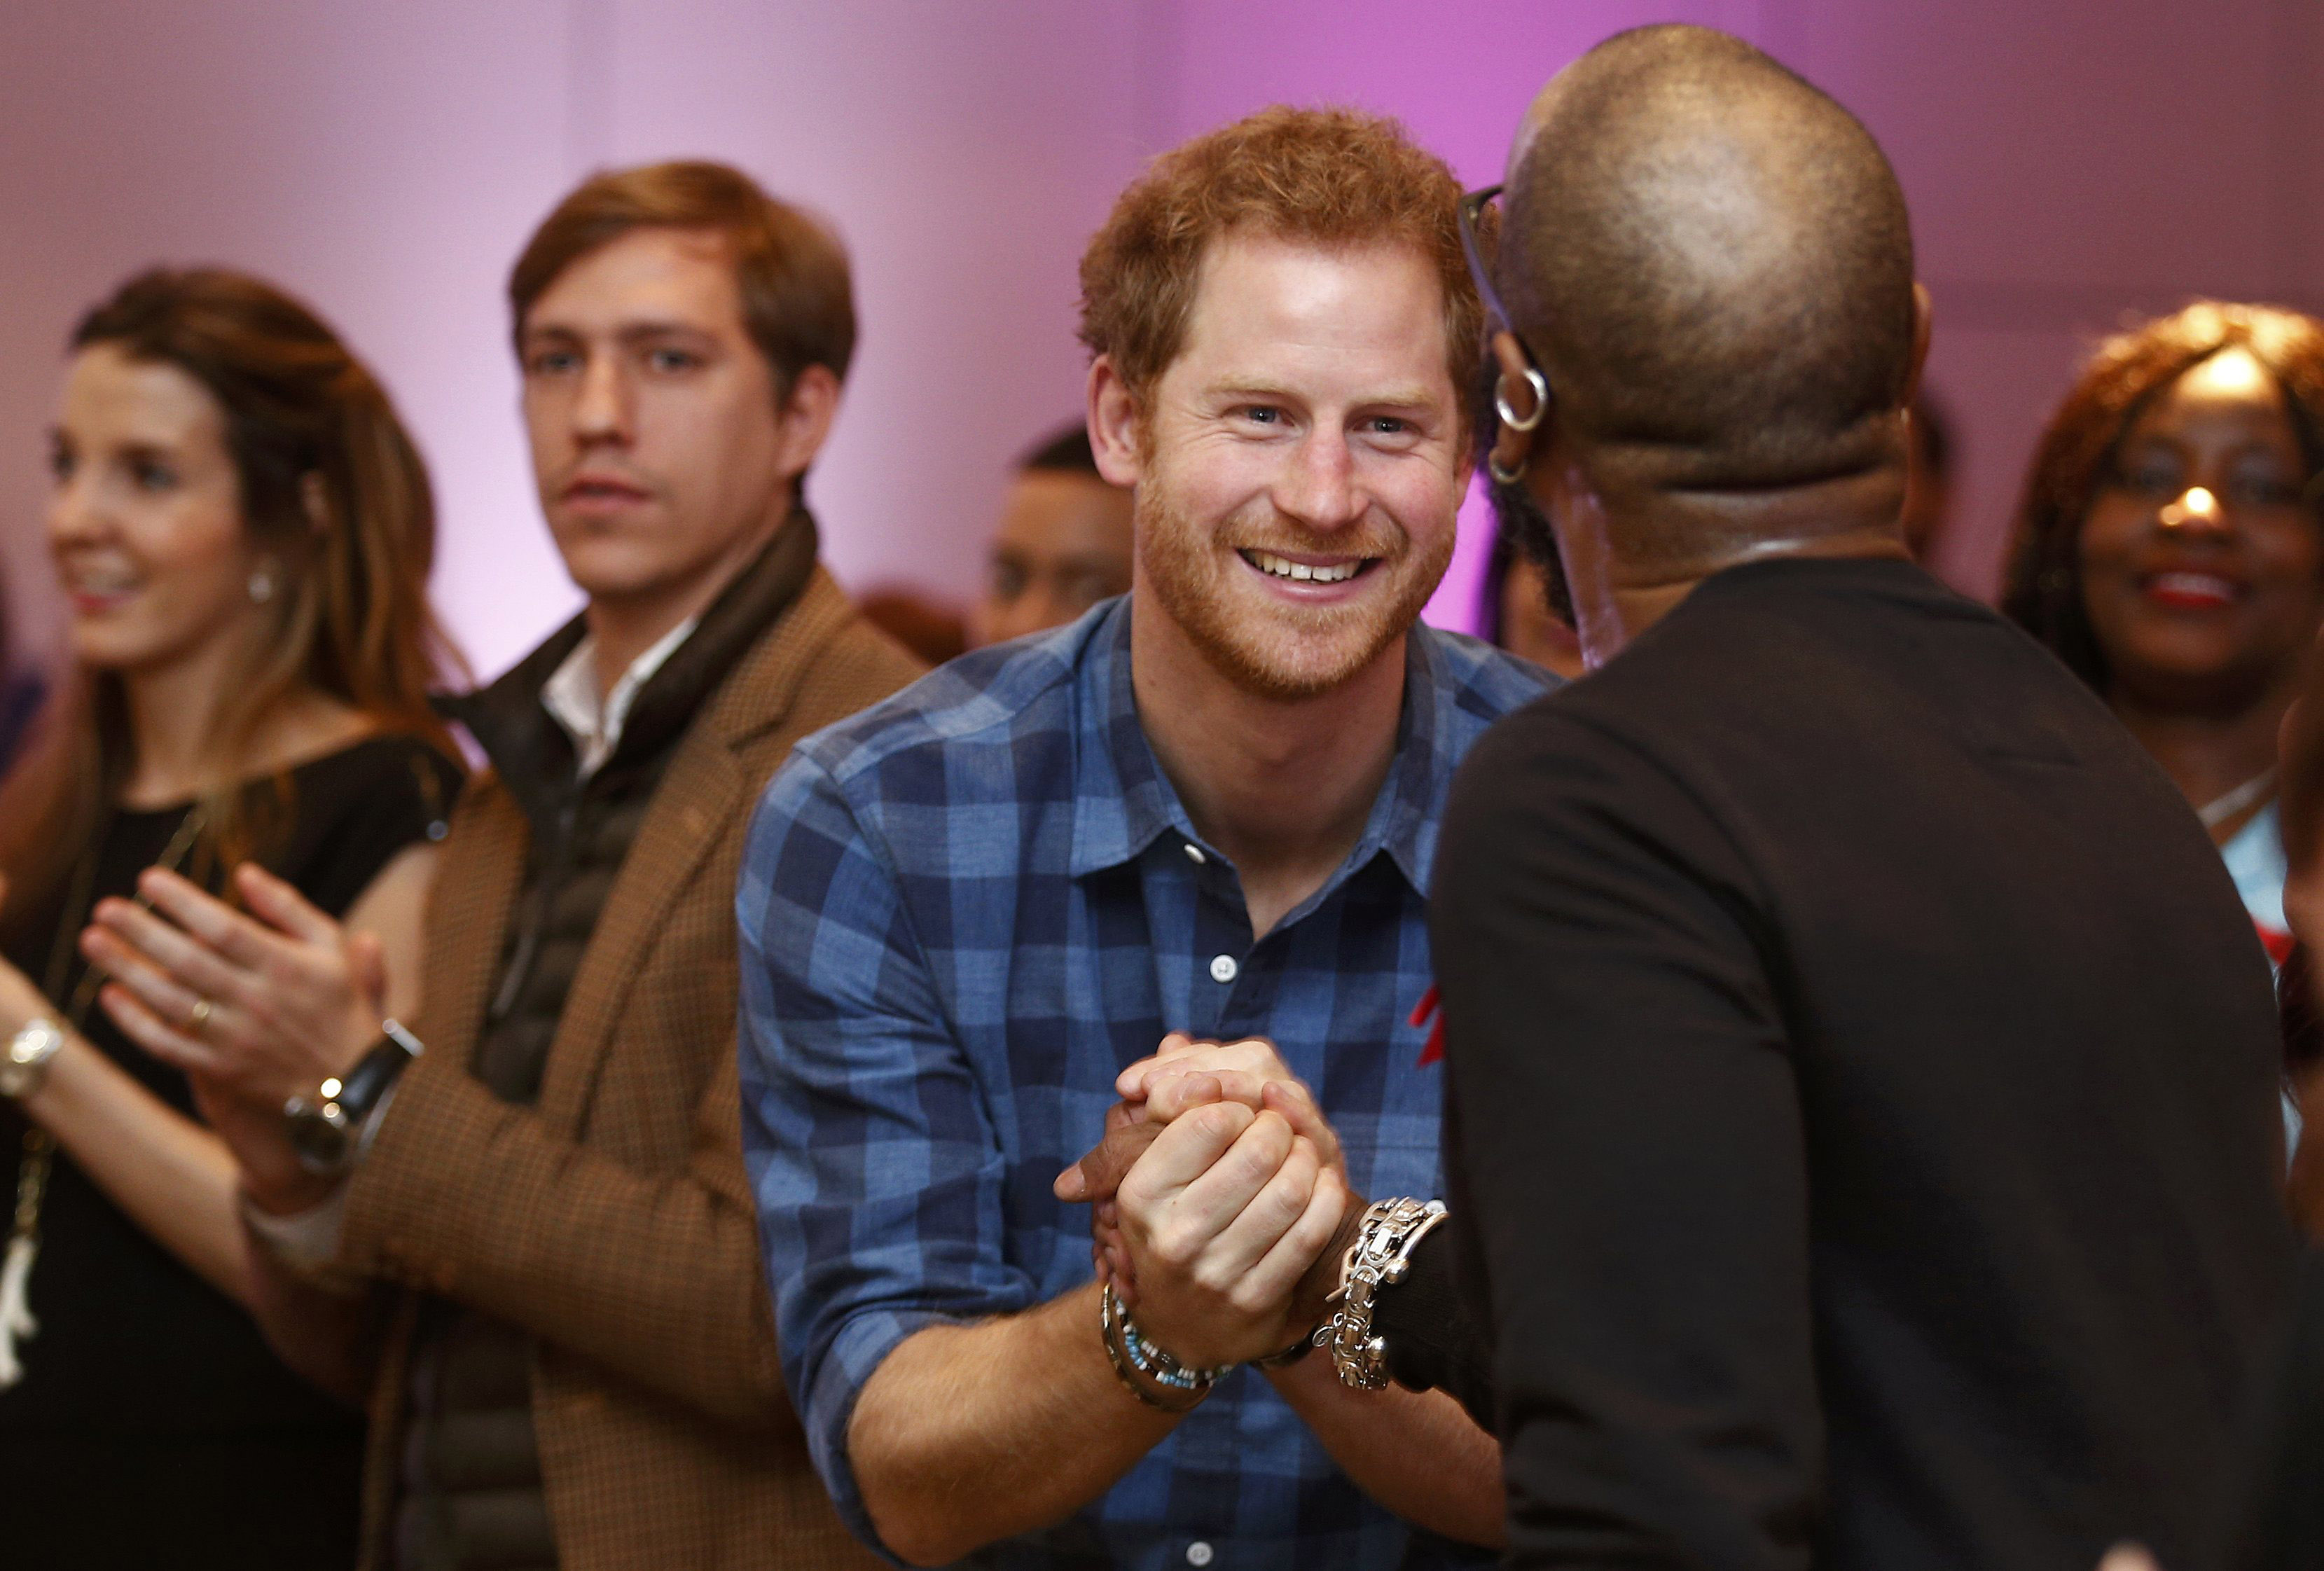 """LONDON, ENGLAND - NOVEMBER 15: Prince Harry congratulates the choir conductor of the """"Joyful Noise"""" choir, a creation of NAZ, a sexual health charity for minority communities, at The Hurlingham club on November 15, 2016 in London, England.  (Photo by Peter Nicholls - WPA Pool/Getty Images)"""